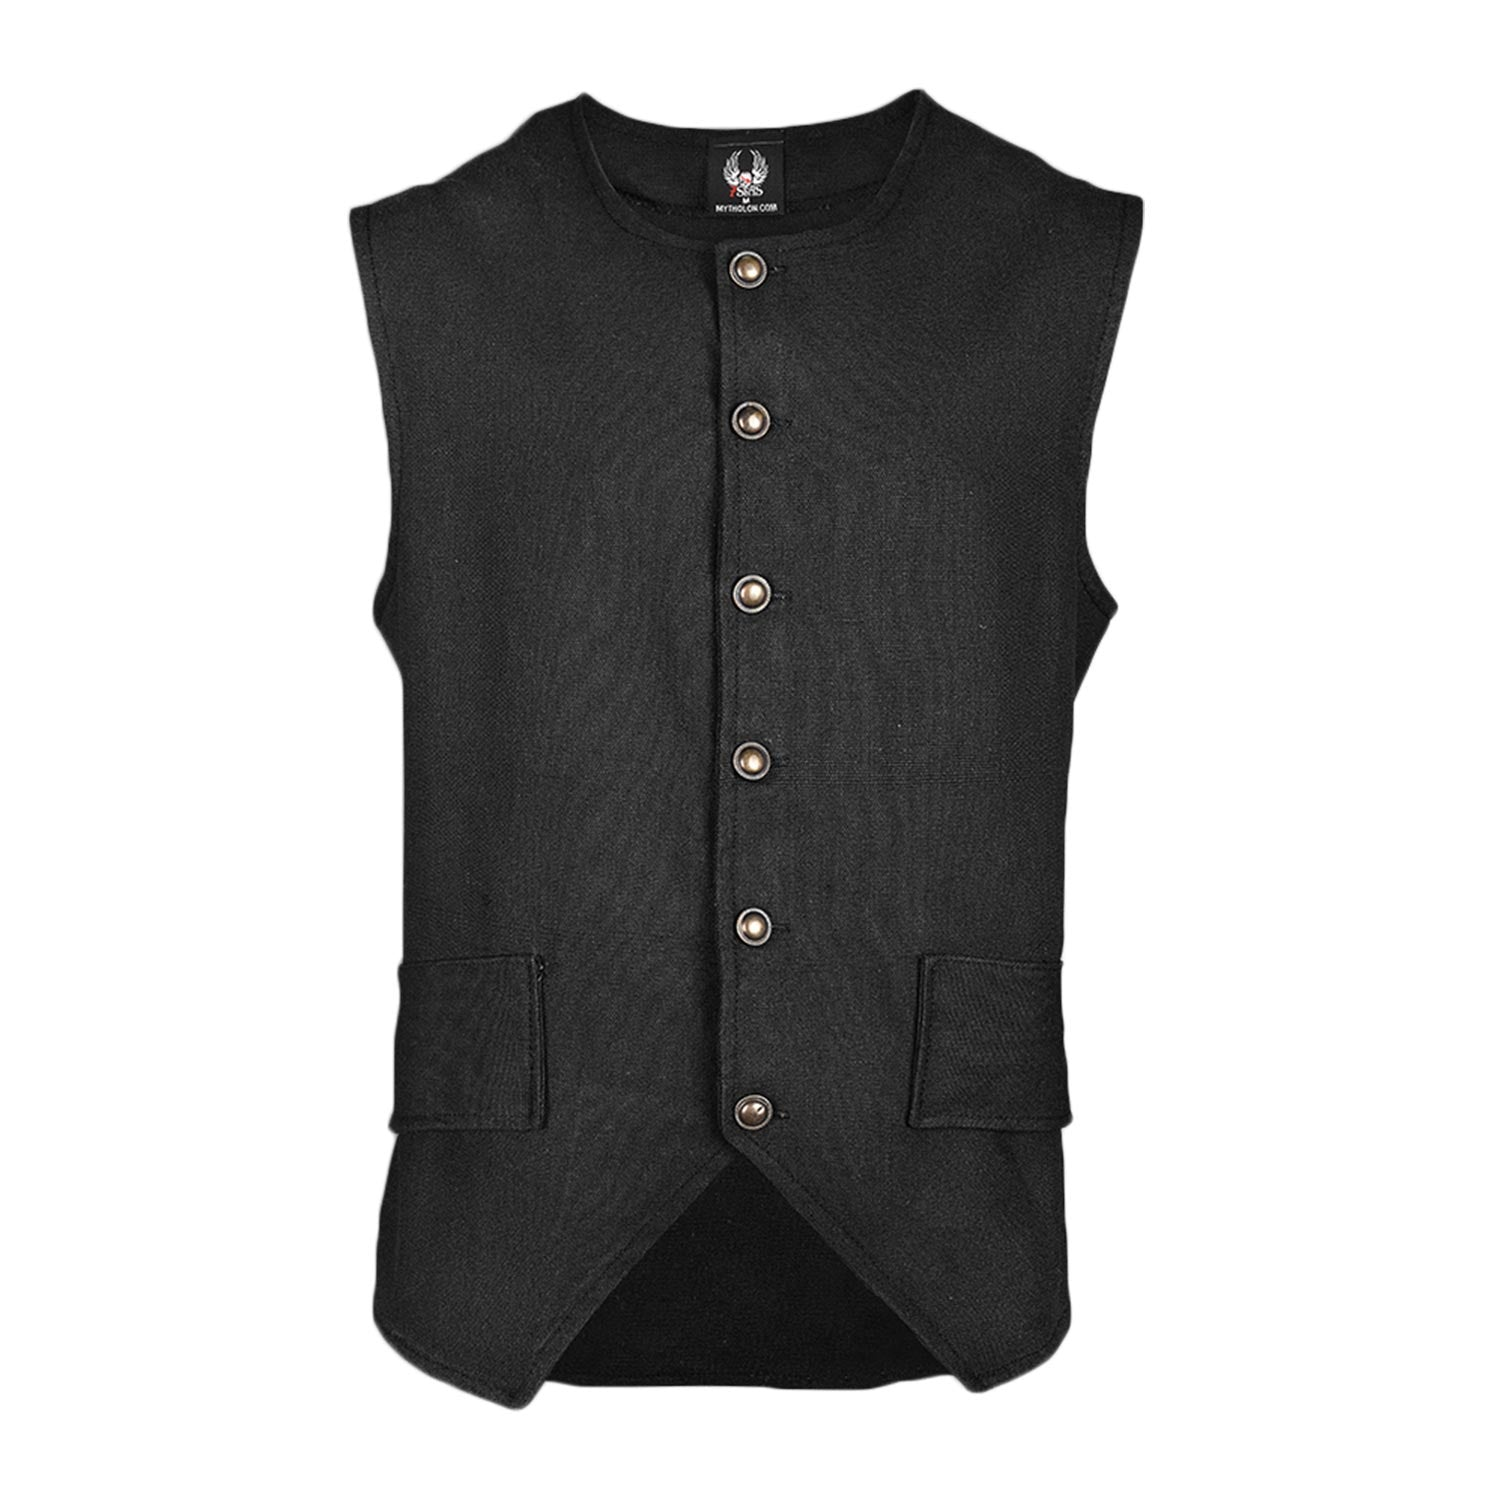 Fletcher vest canvas